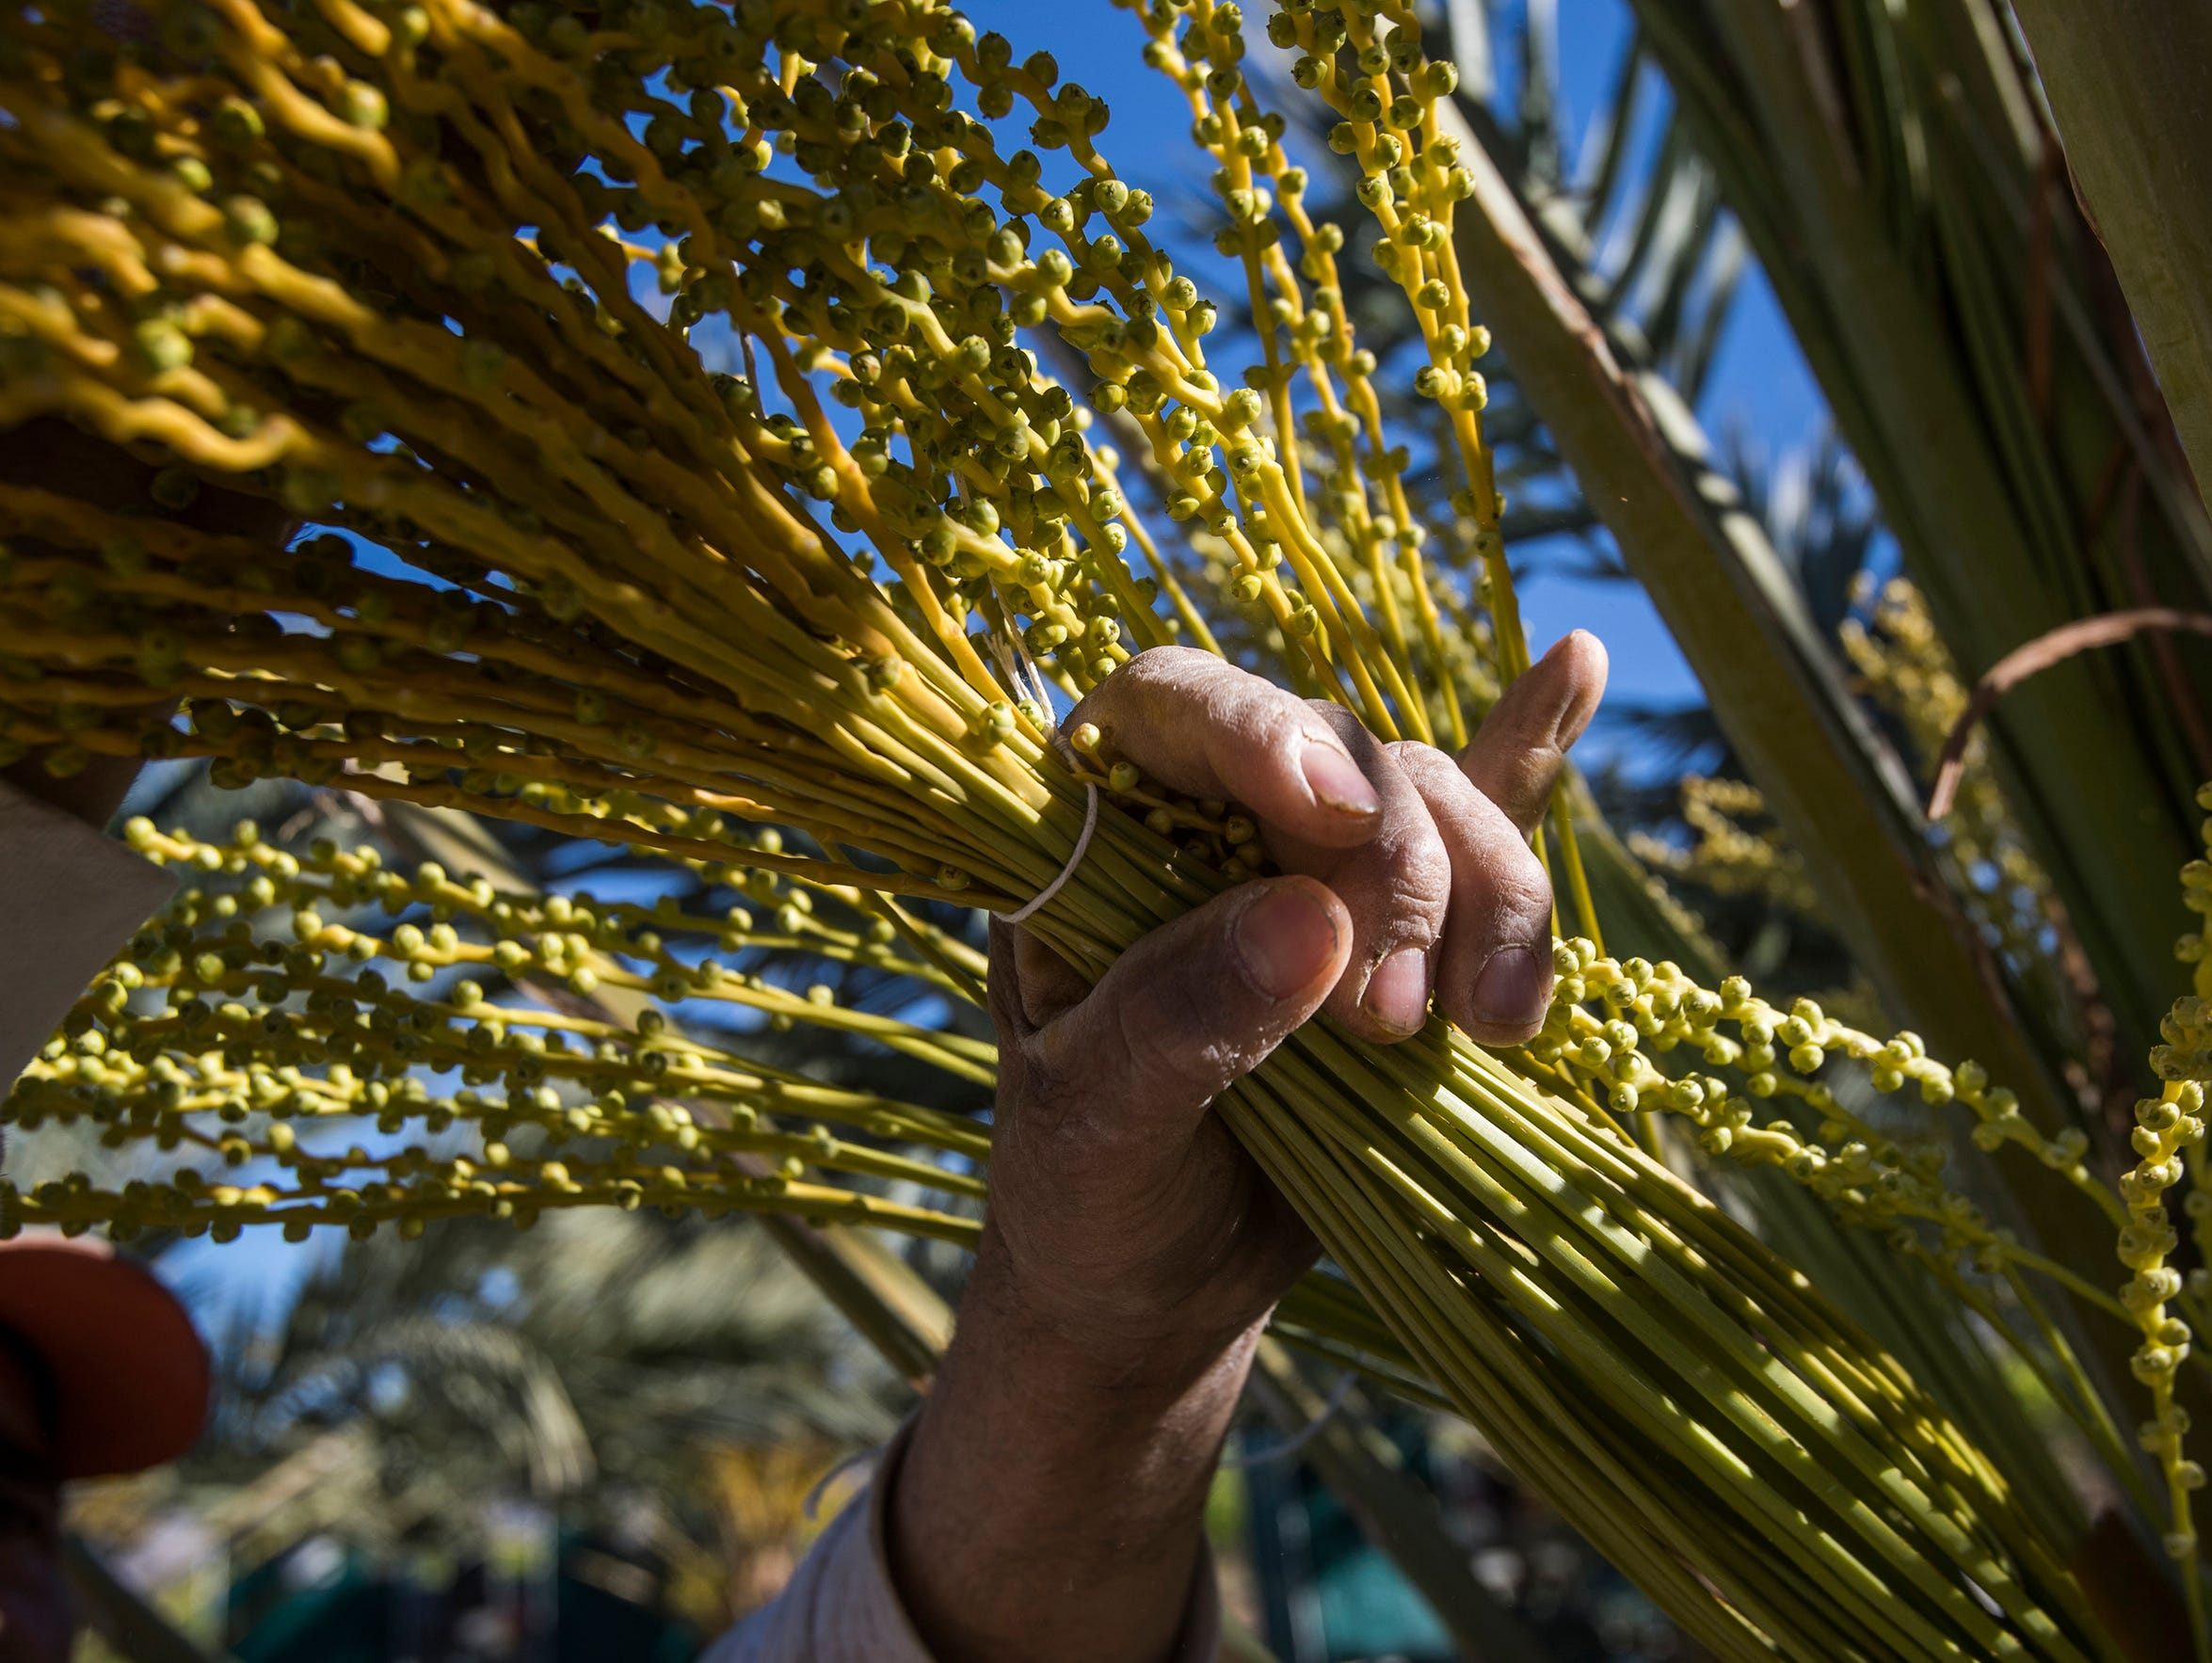 Salvador Sevilla, a palmero who has been working with dates over the past three decades, learned his craft on 56-foot palm trees. In this photo he prepares a female bunch which will be pollinated.